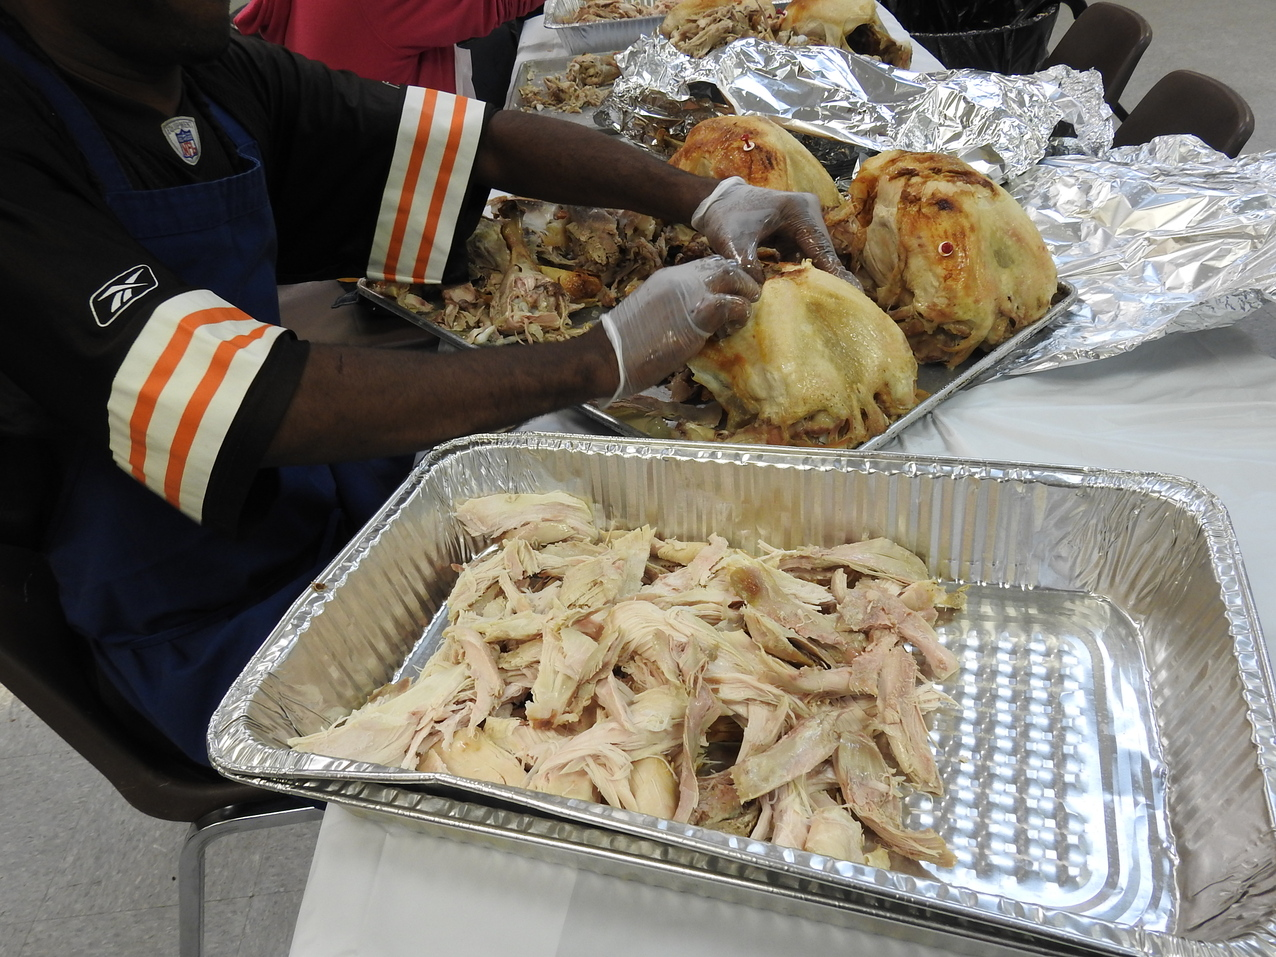 Volunteers, donations needed to help St. Augustine Hunger Center prepare, deliver 12,000 Thanksgiving meals